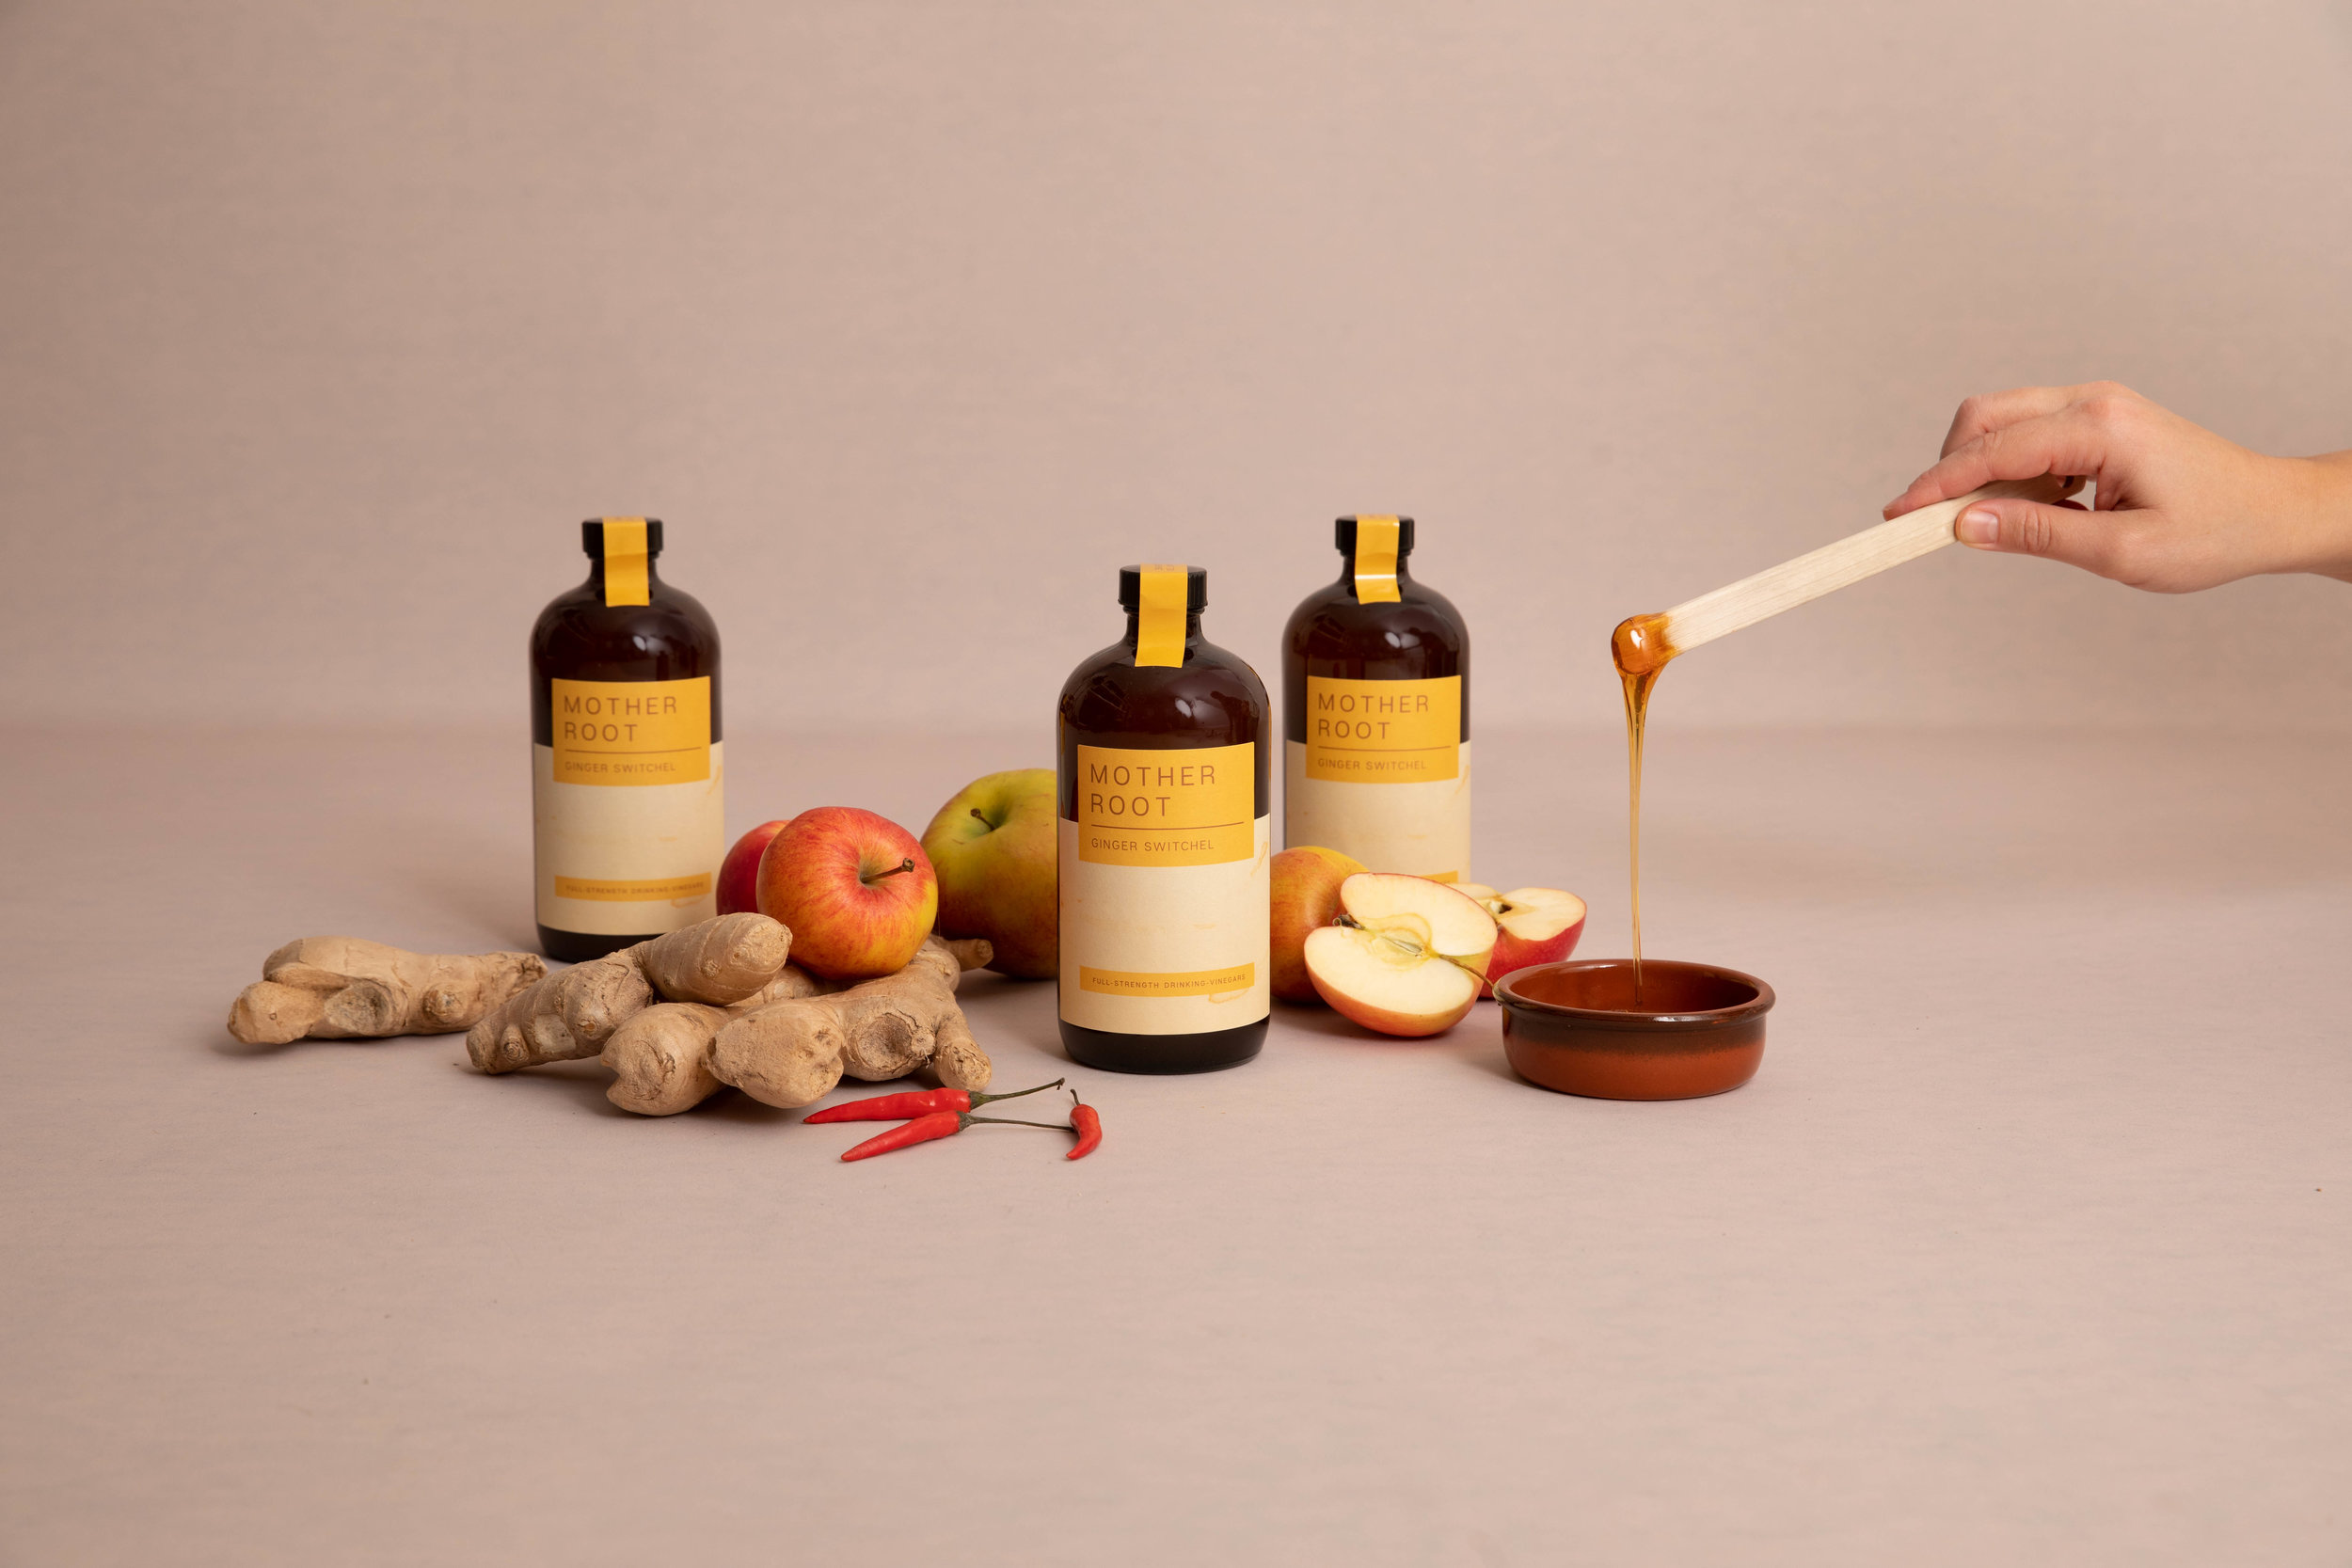 Product photography for East Dulwich based Mother Root London